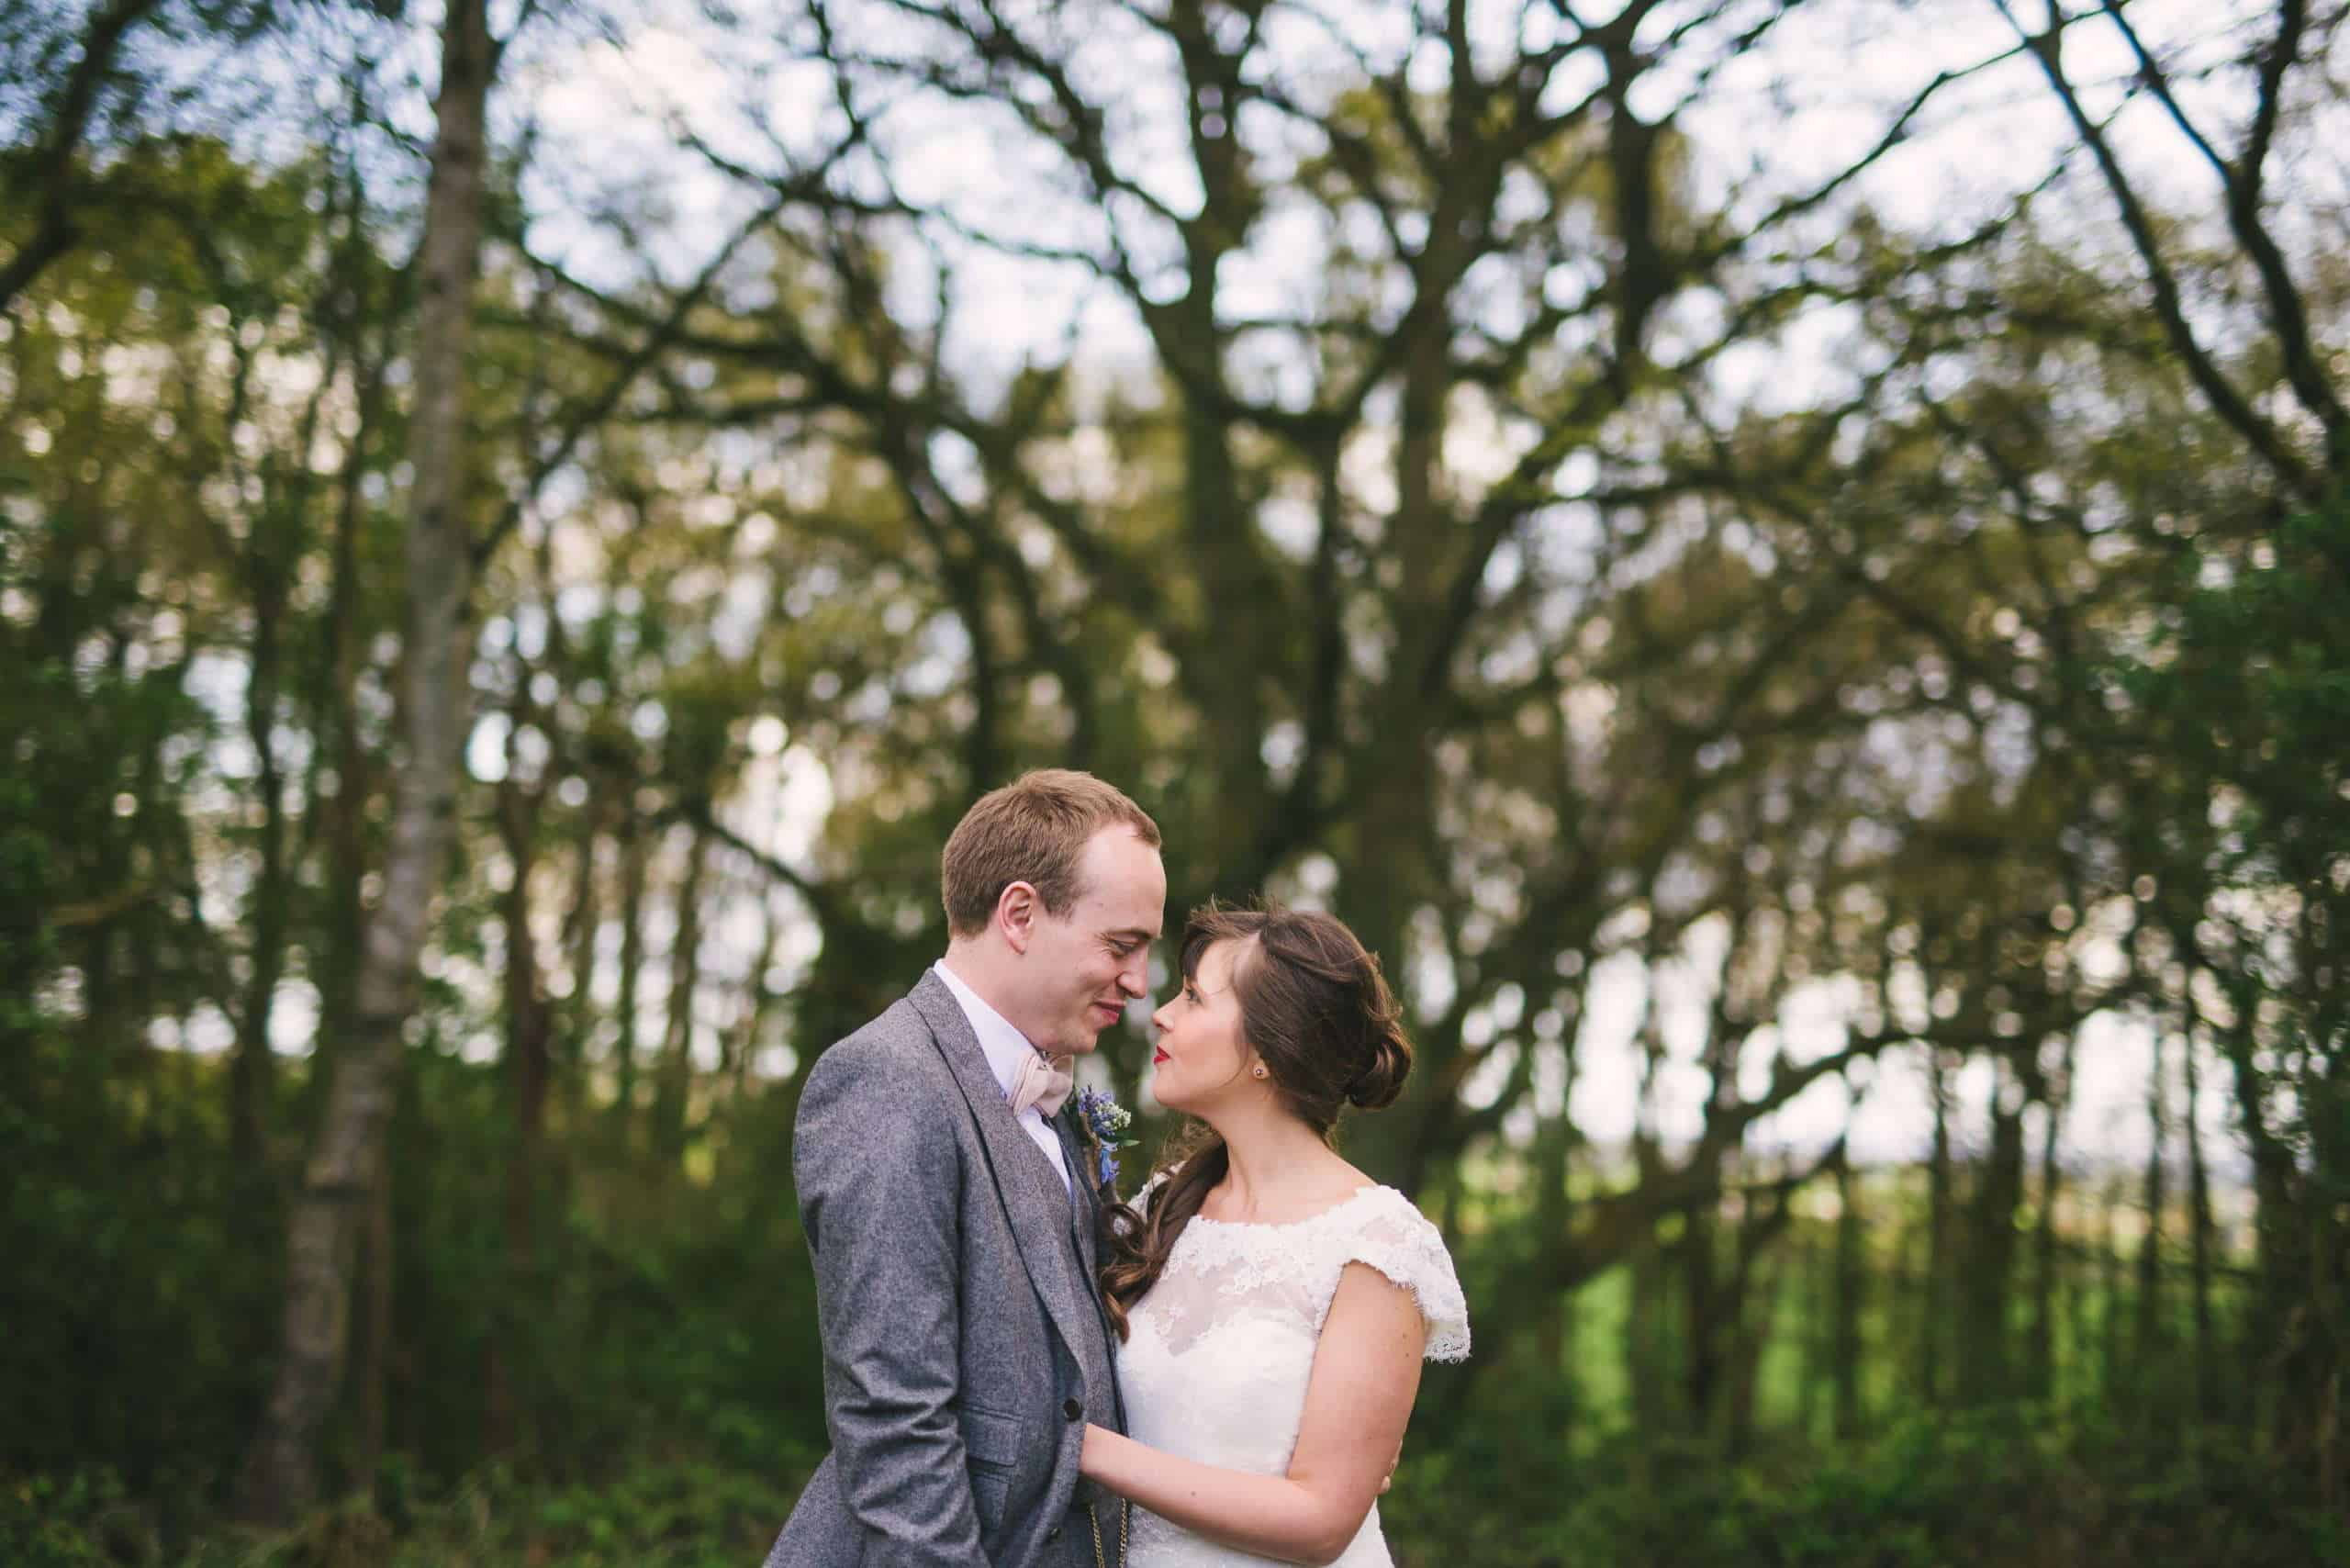 230416 Essex Wedding Photography Baddow Gallerywood 111